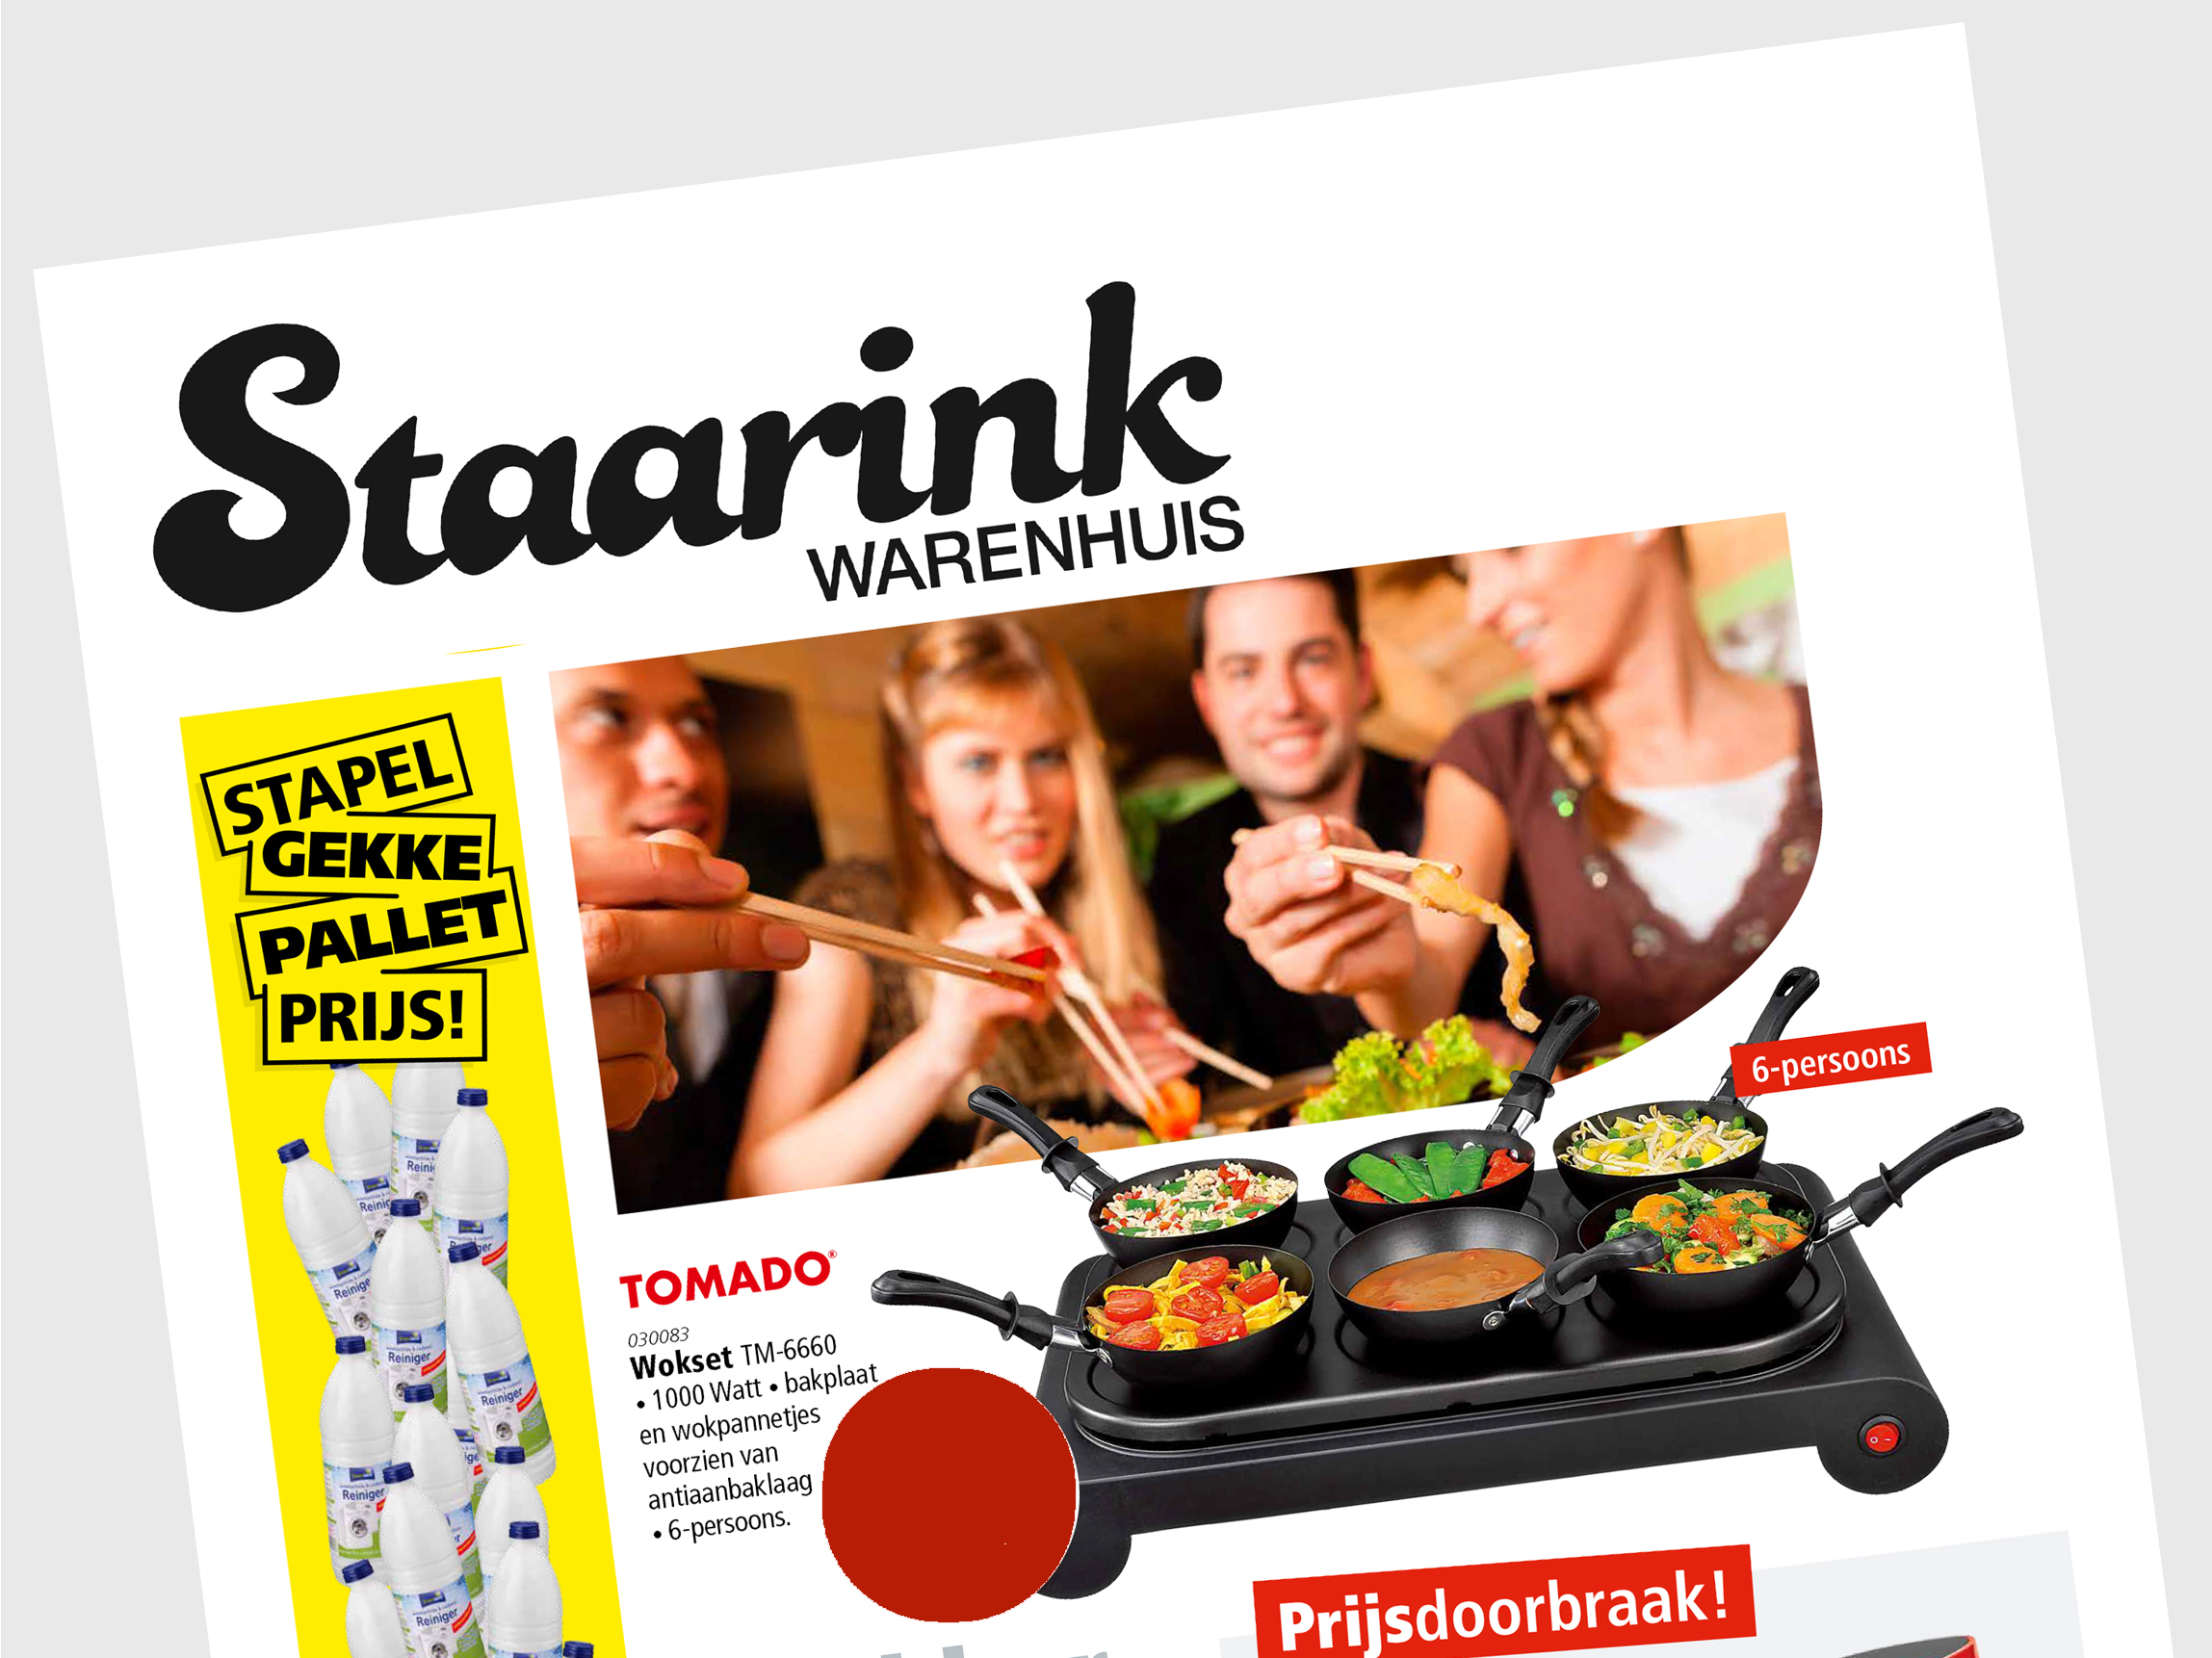 Staarink-warenhuis-folder-website-VVV-Doesburg